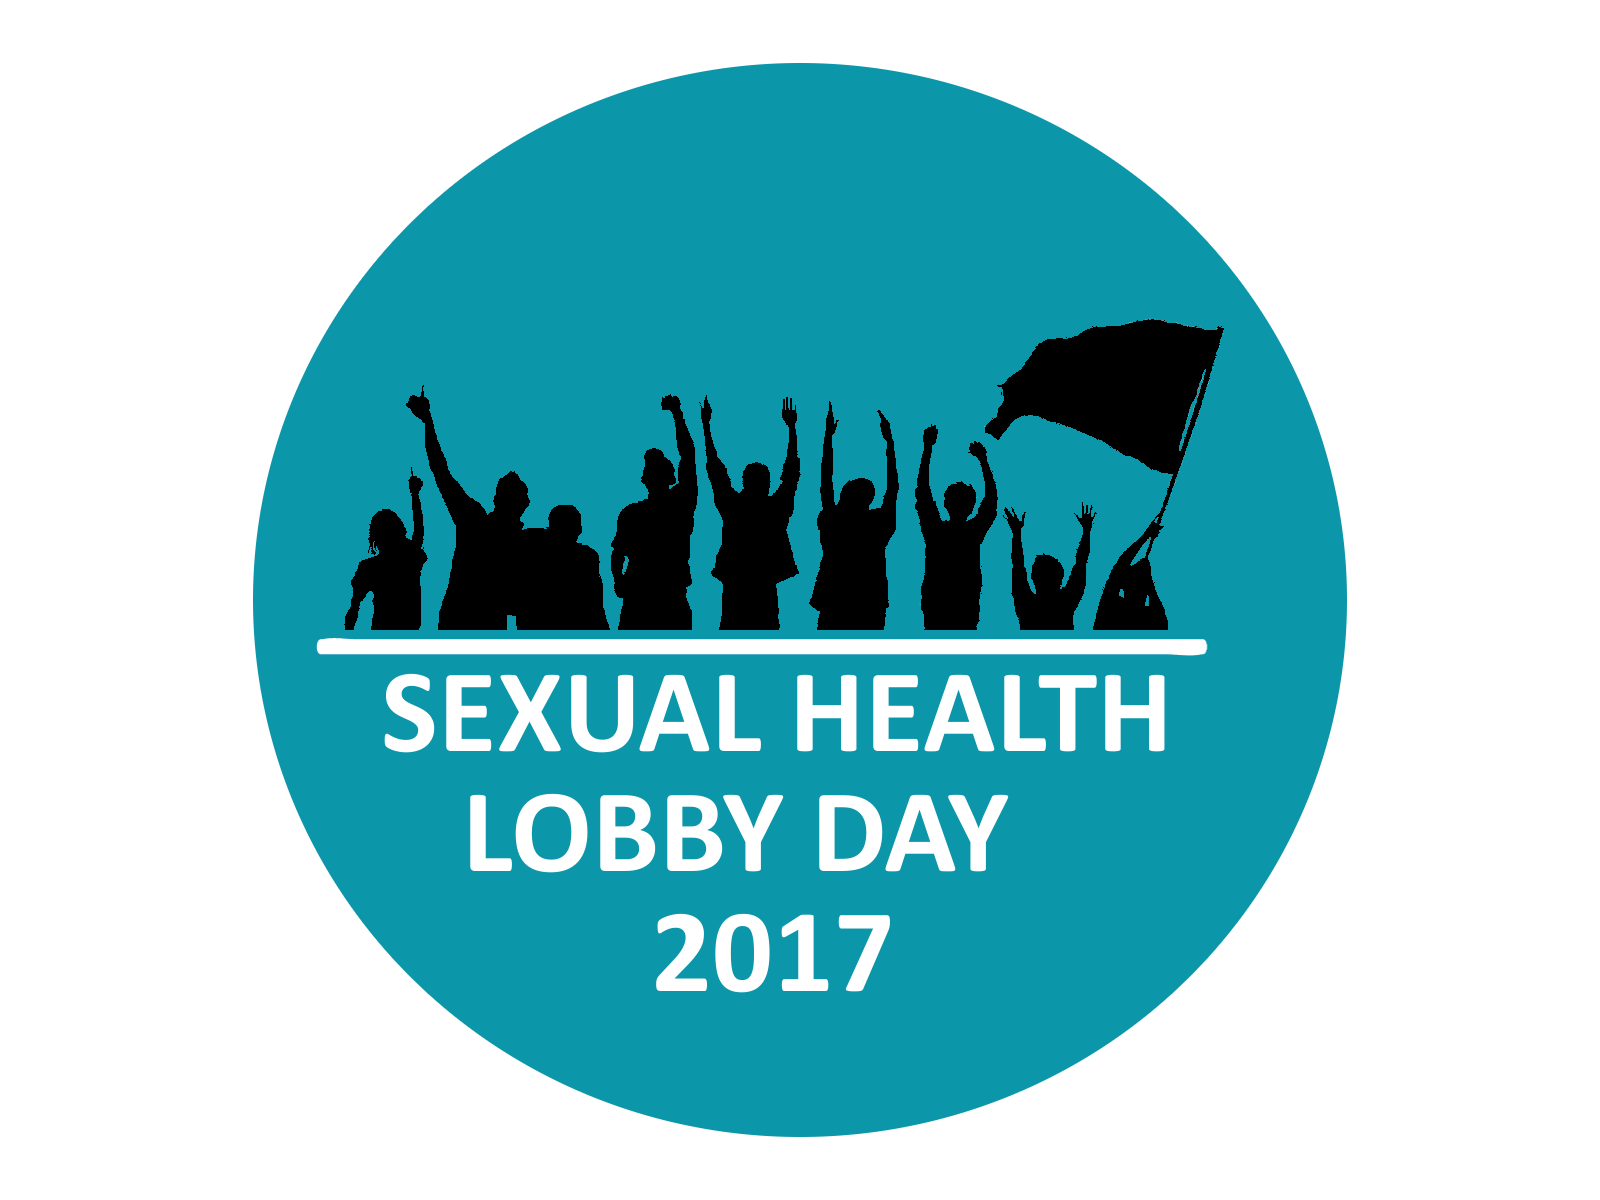 Sexual Health Lobby Day 2017 logo in blue circle